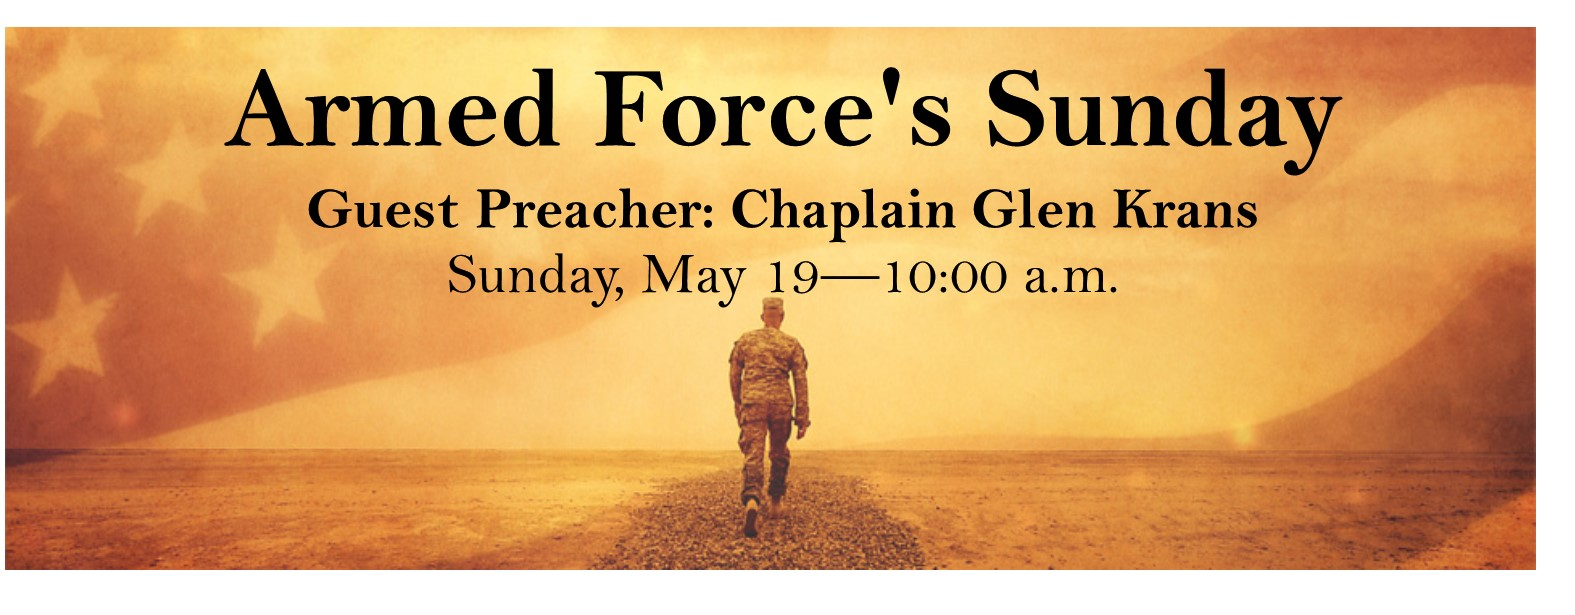 Armed-forces-sunday